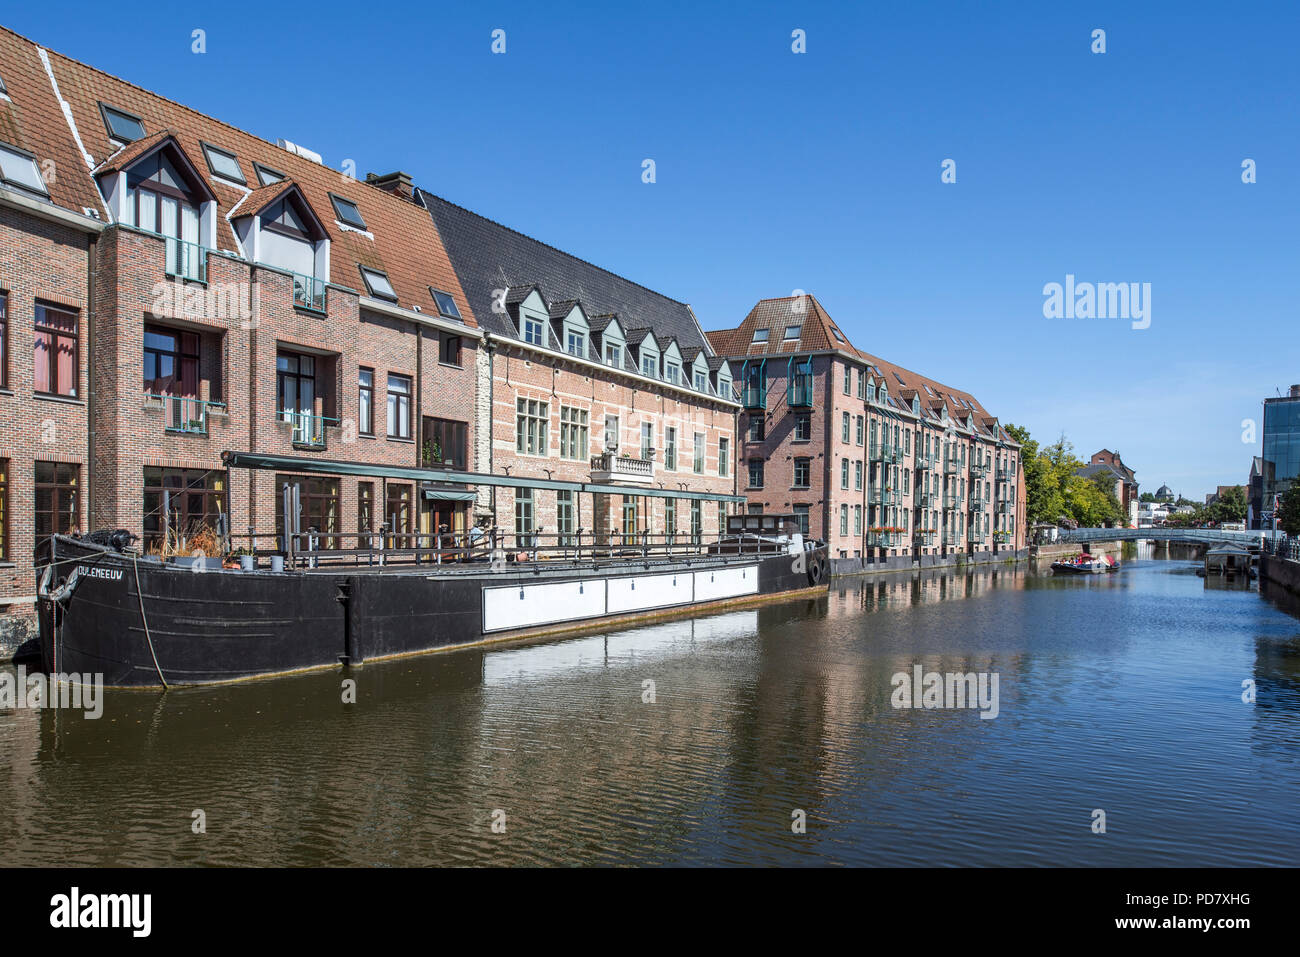 Tavern / restaurant De Kraanbrug and inland waterway vessel Dijlemeeuw on the river Dijle in the city Mechelen / Malines, Antwerp, Flanders, Belgium - Stock Image